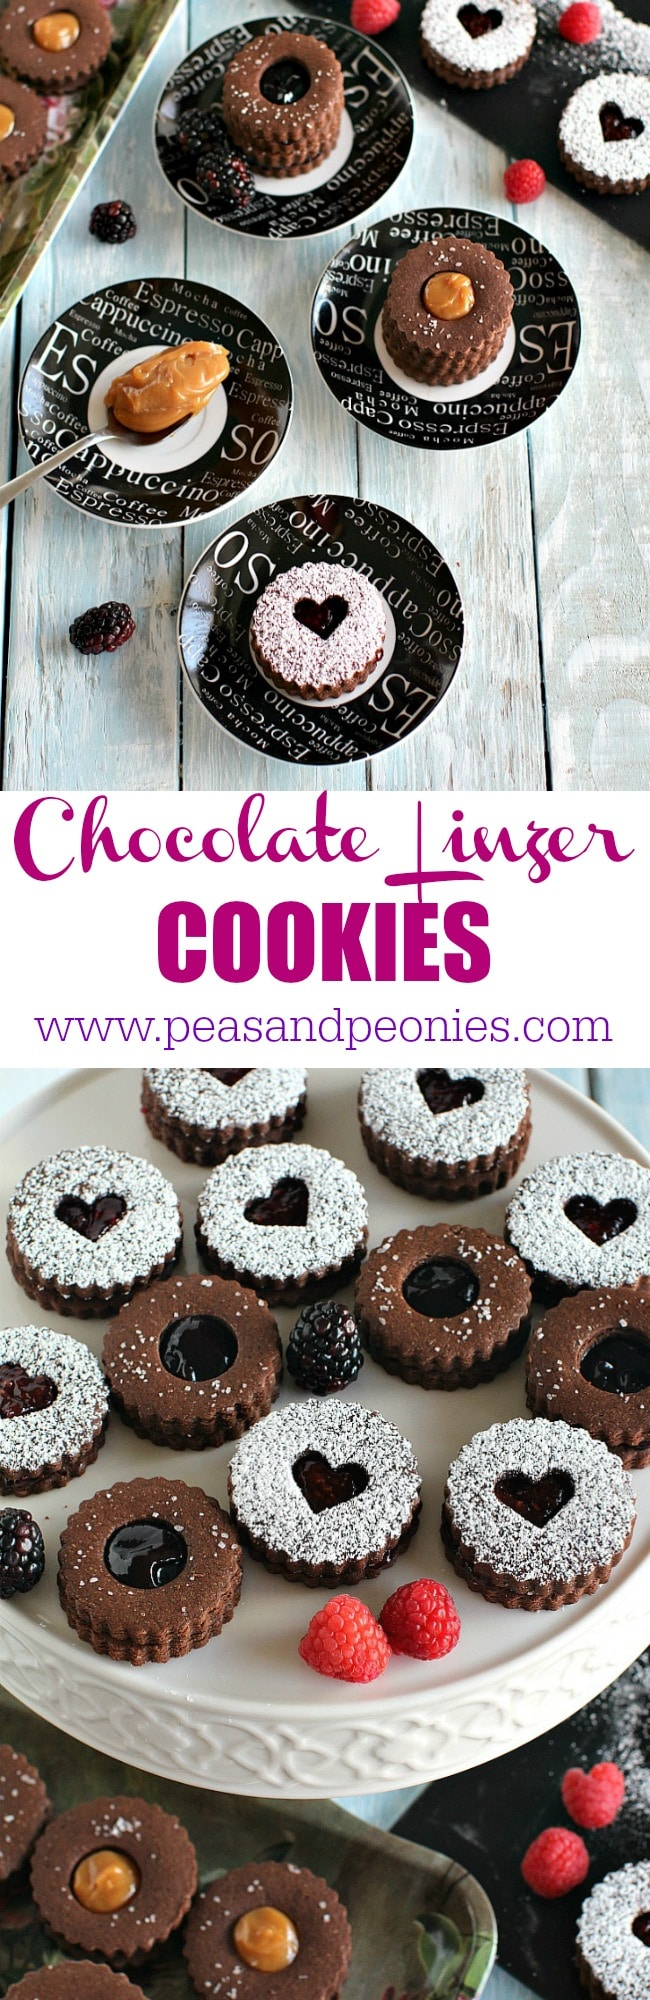 Chocolate Linzer Cookies topped with sea salt and filled with Dulce de Leche, sweet blackberry jam and flavorful raspberry jam.